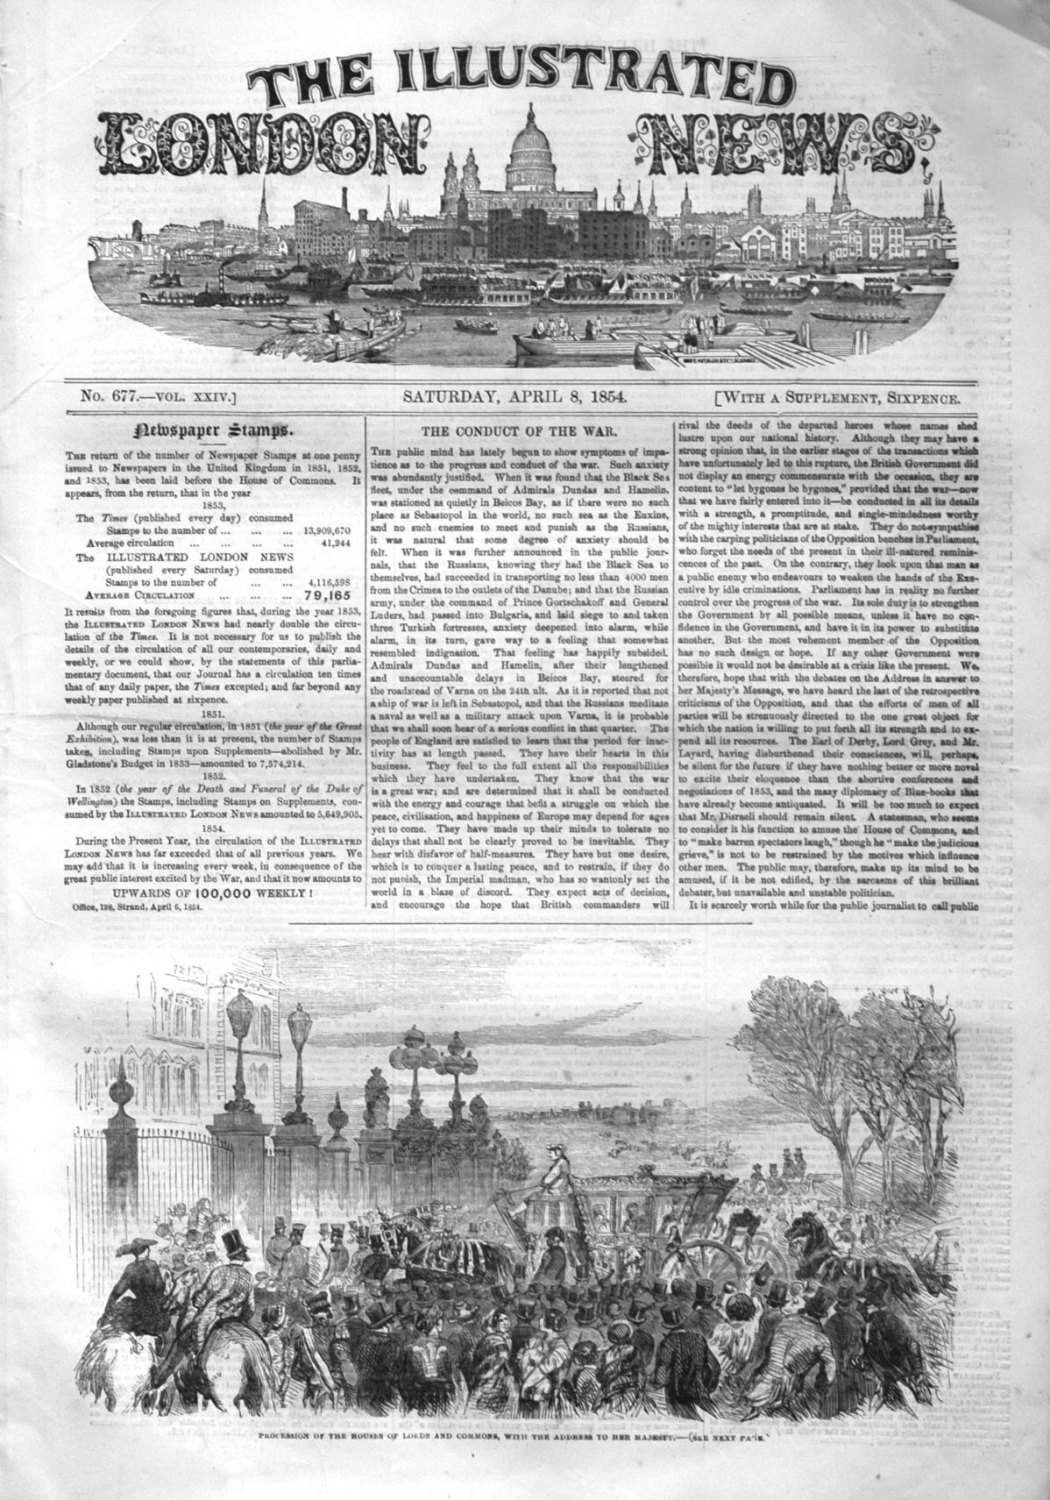 Illustrated London News. April 8th 1854.